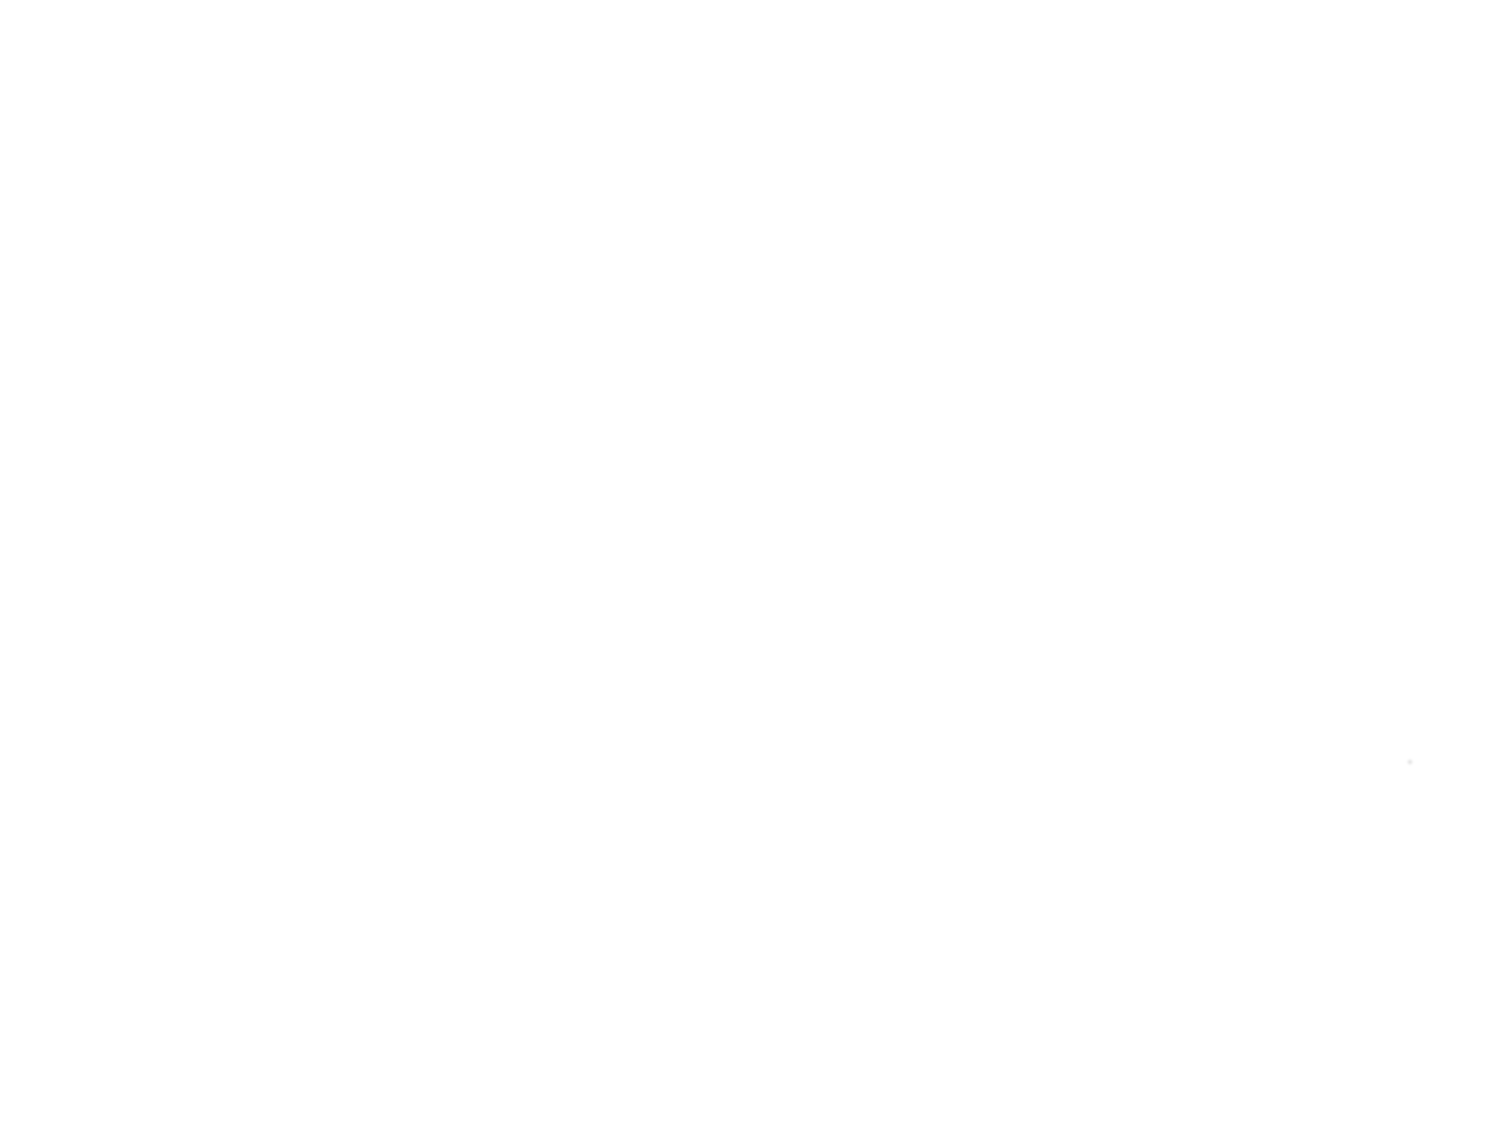 Cork & Barrel